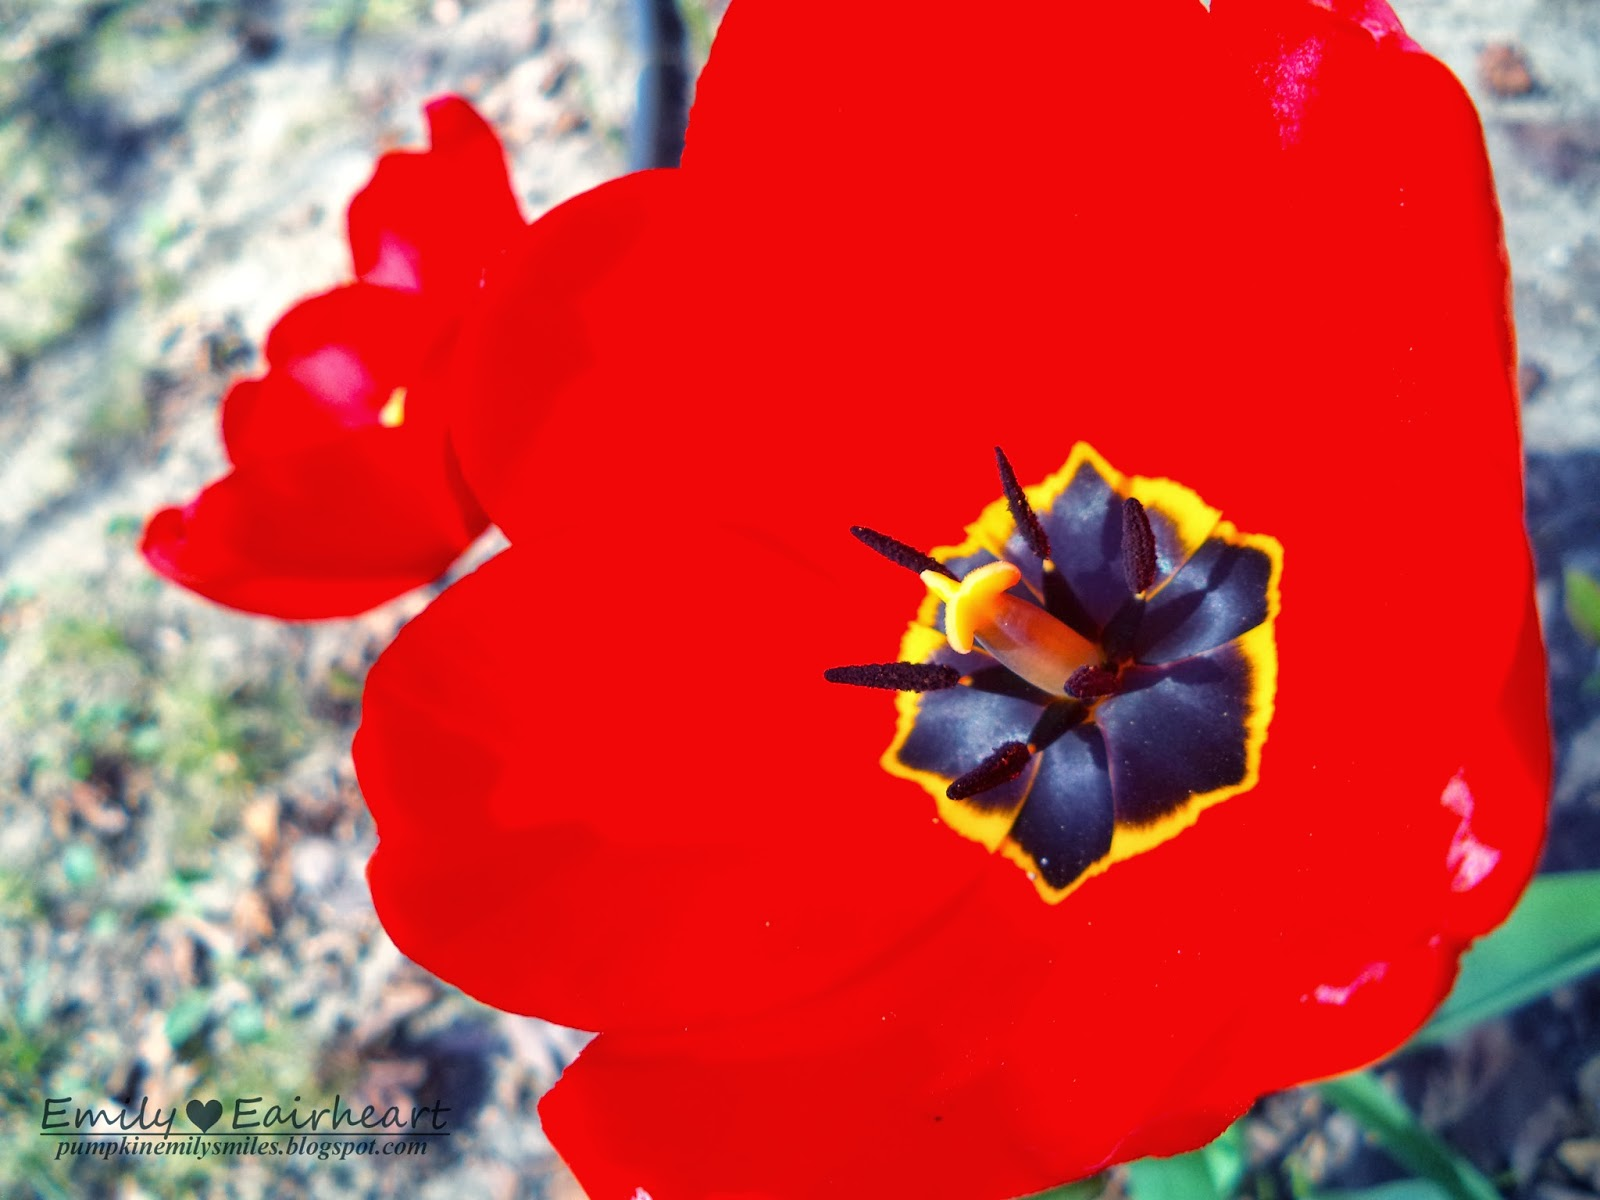 A close up of one of the red Tulips and a red Tulip in the background.